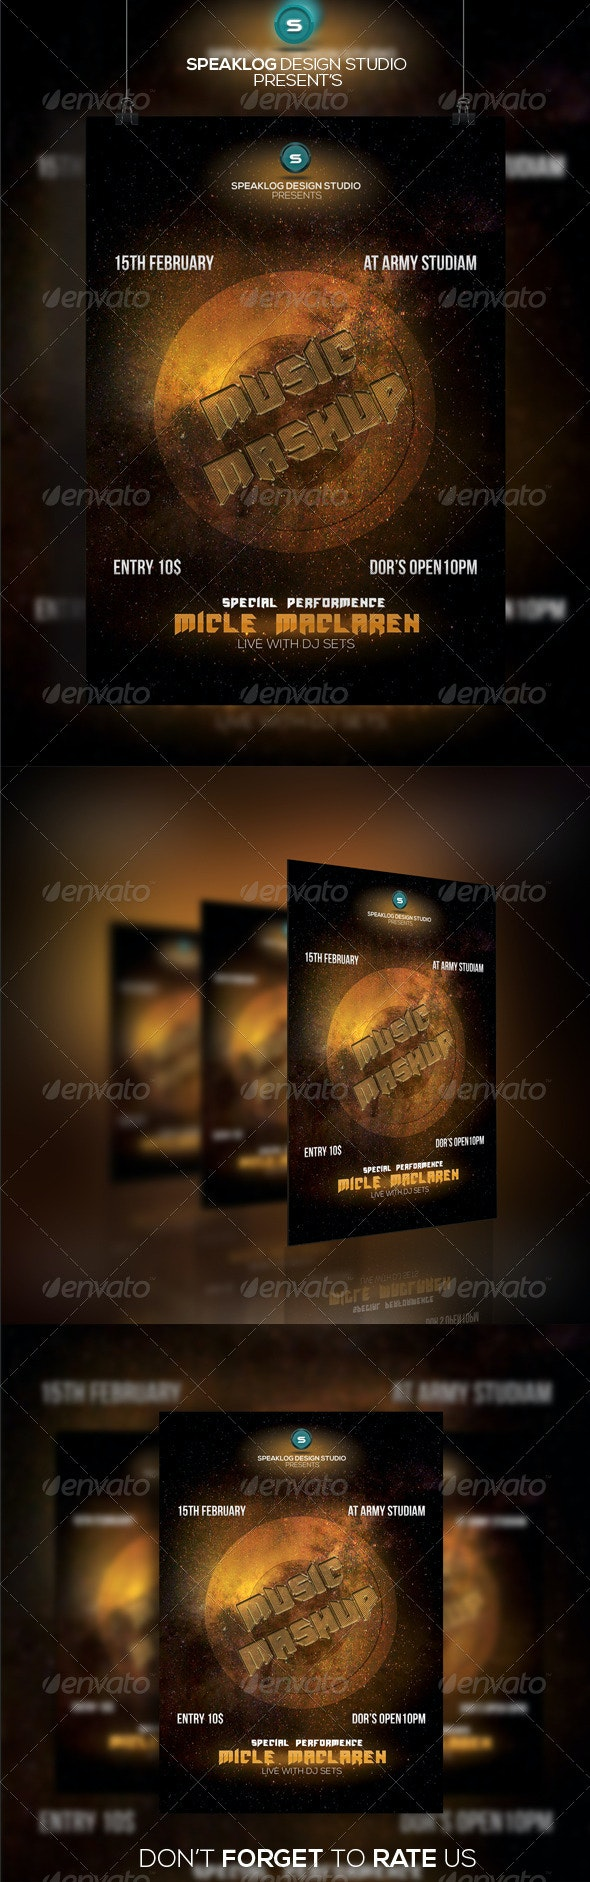 Music Mashup Party Flyer Template